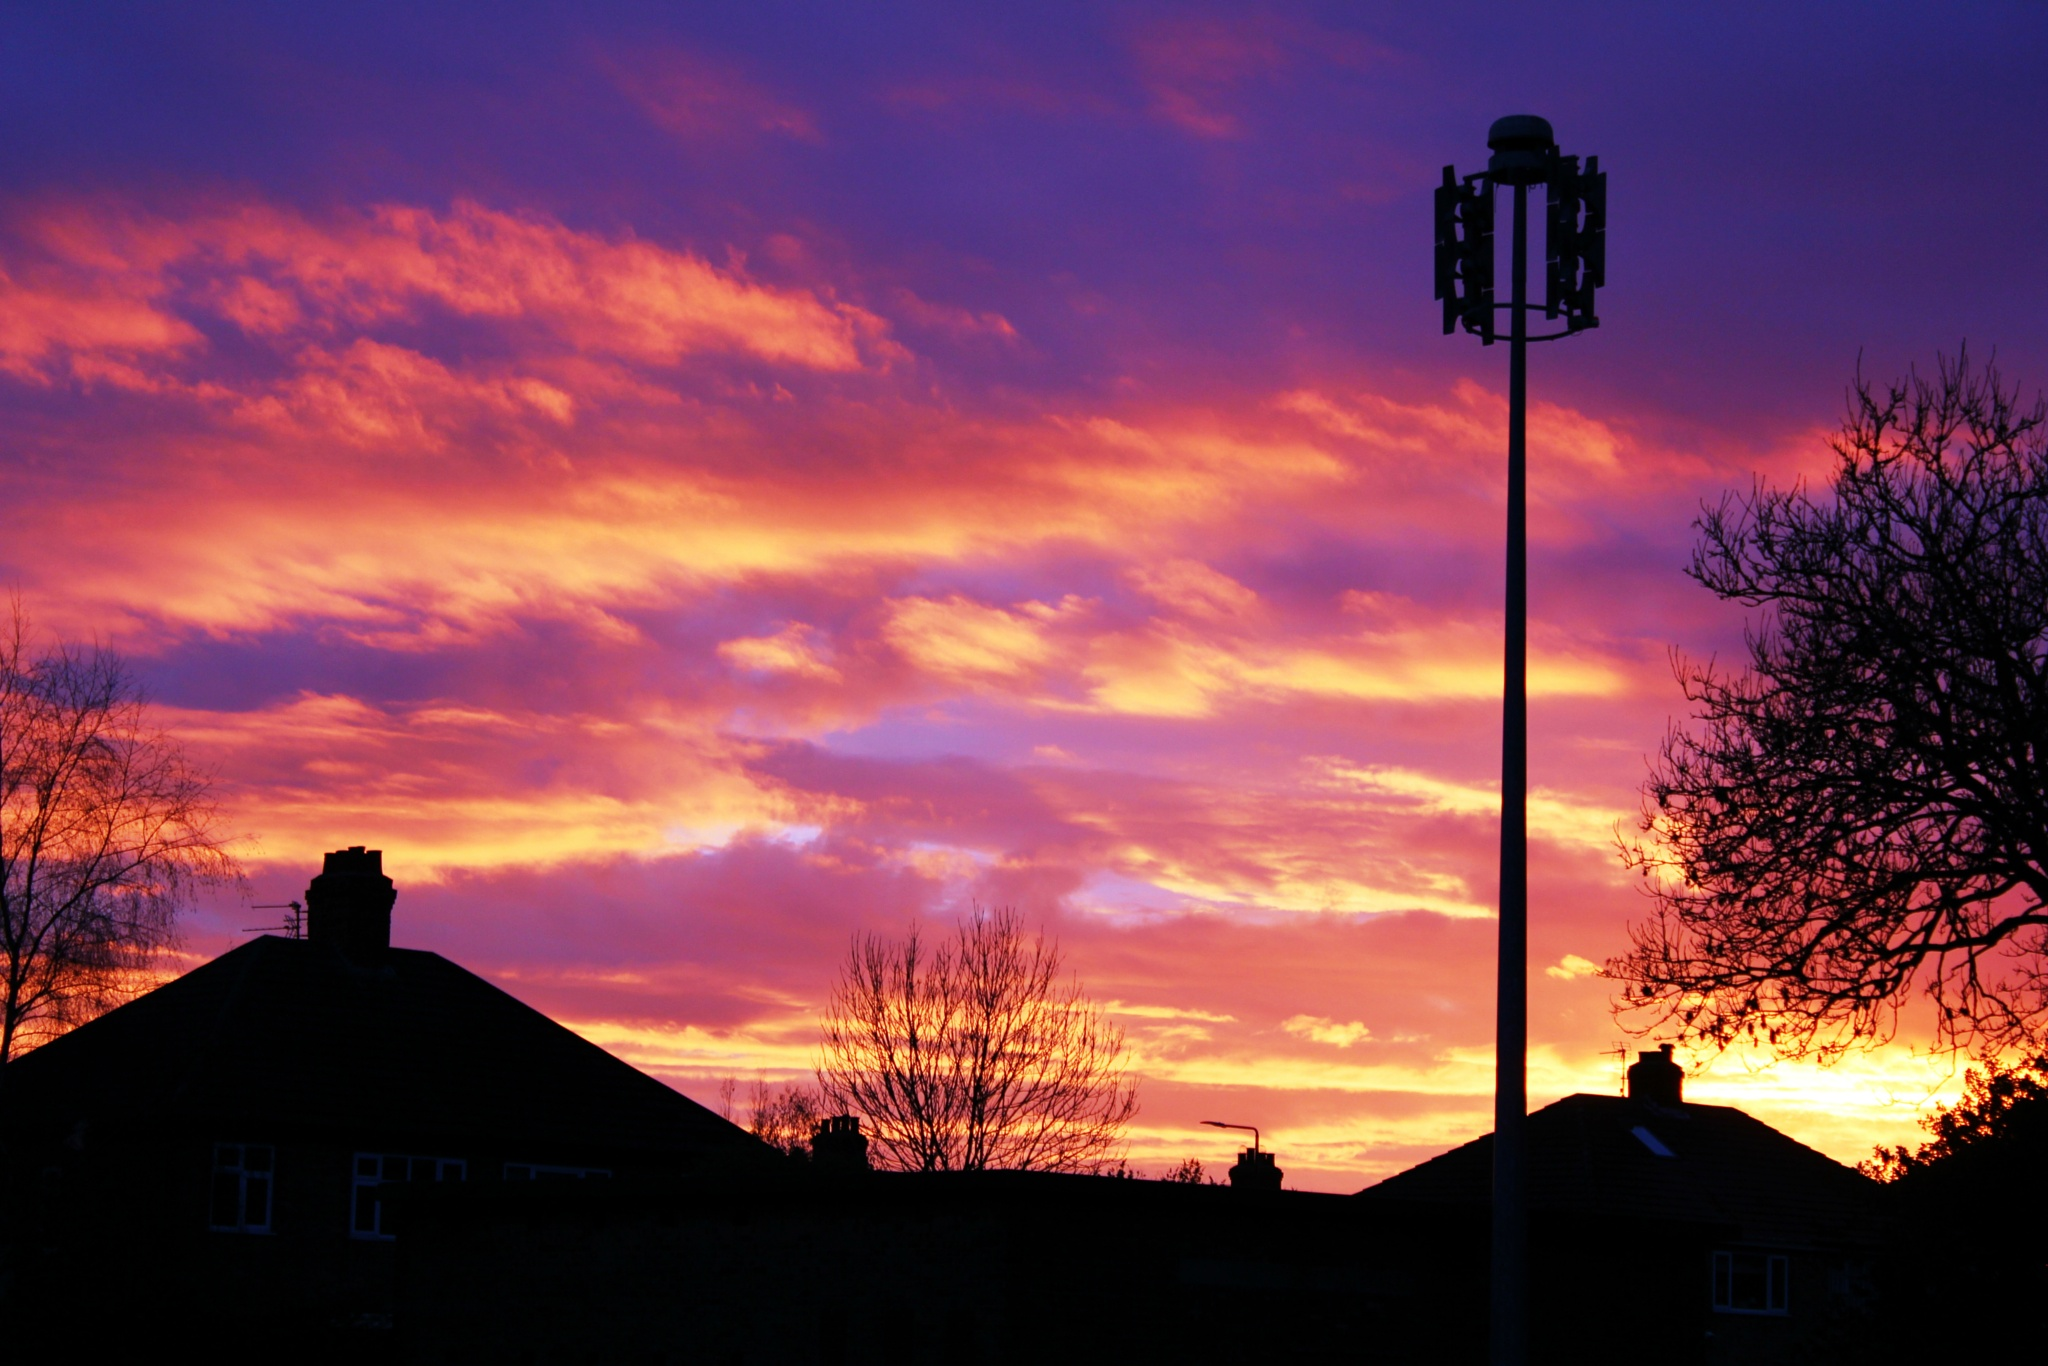 Urban Sunset by Michelle Connor